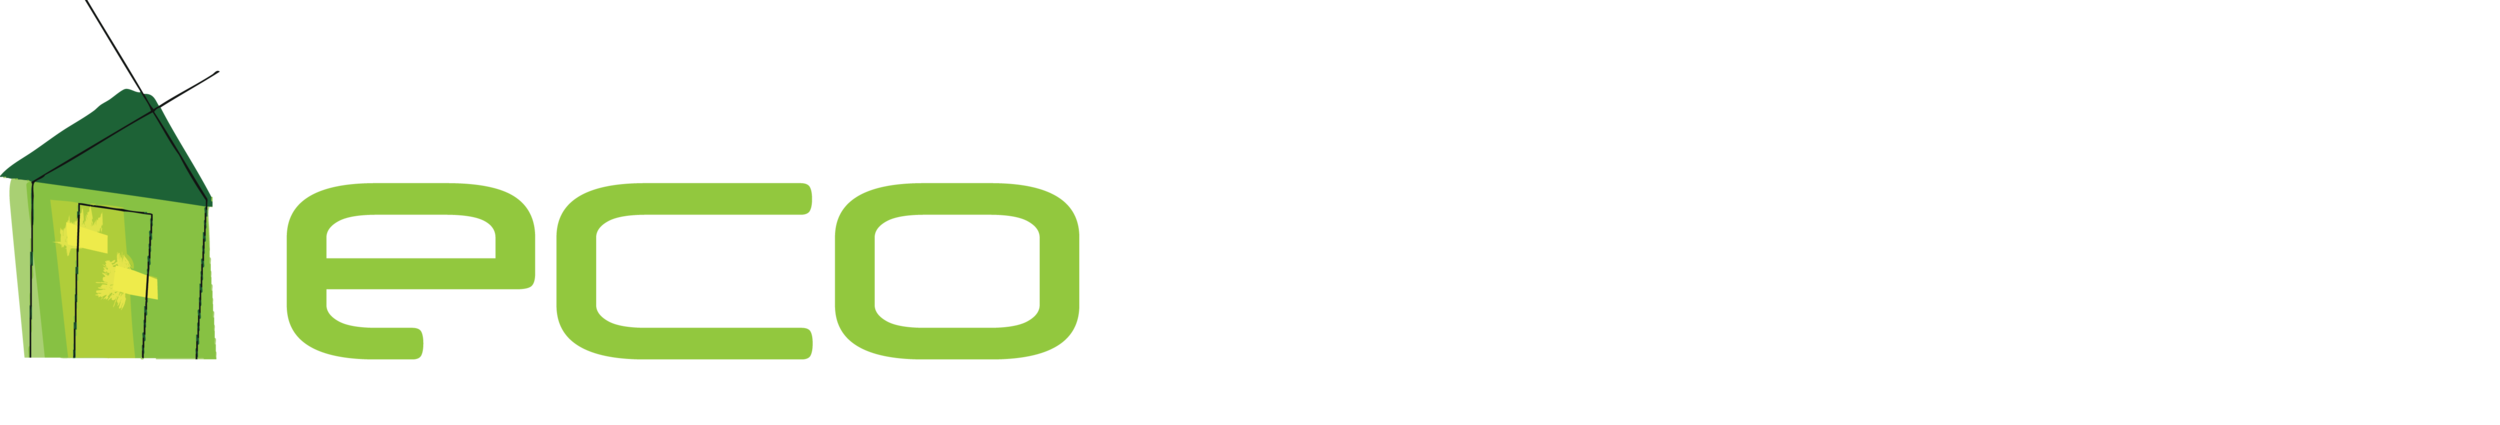 Ecomotive logo new 2015 simple white.png